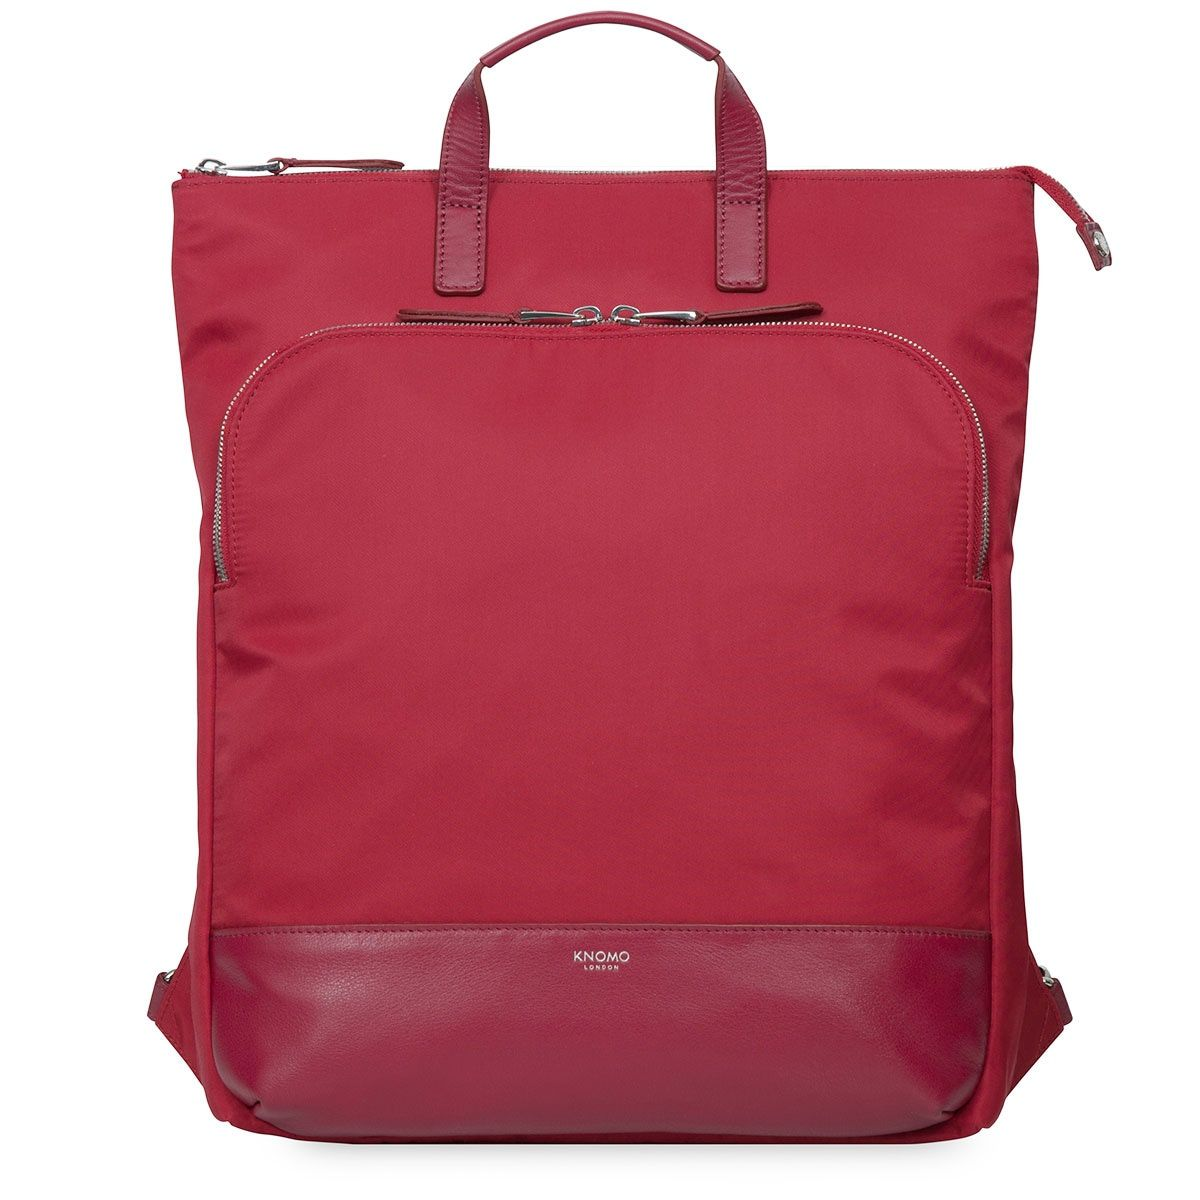 Knomo Harewood Tote Backpack Cherry 15 inch